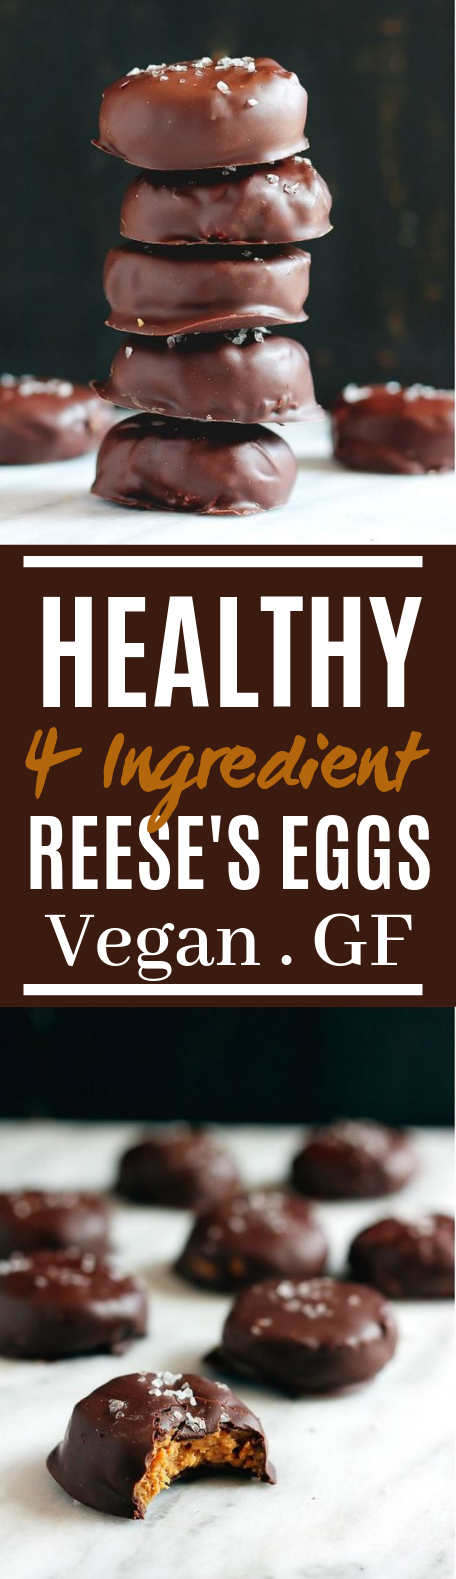 Healthy 4 Ingredient Reese's Eggs #vegetarian #glutenfree